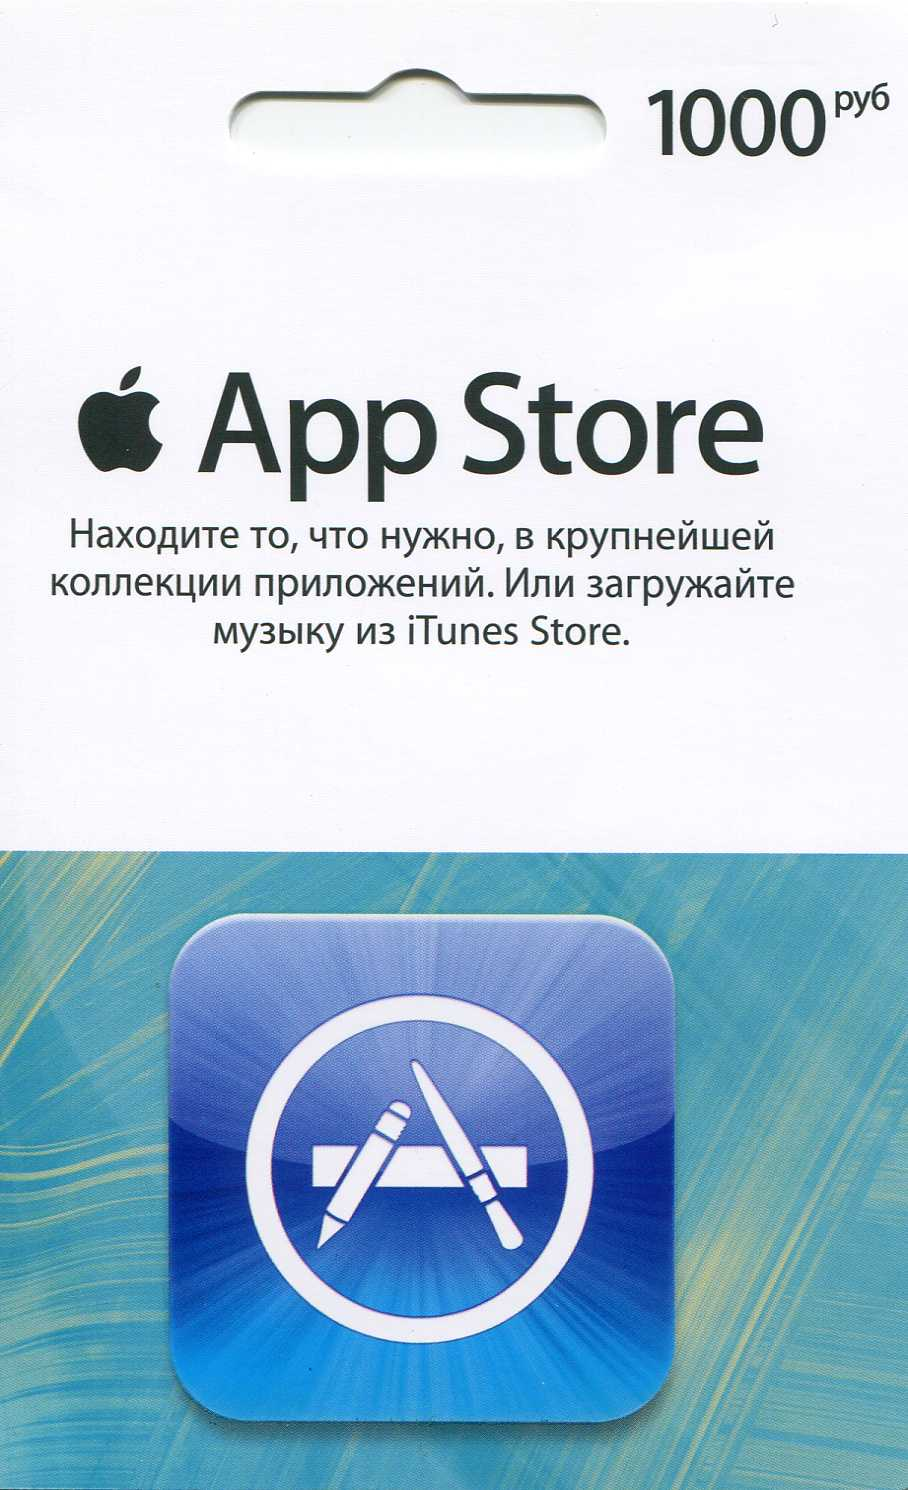 iTunes Gift Card (Russia) 1000 rubles (PHOTO)